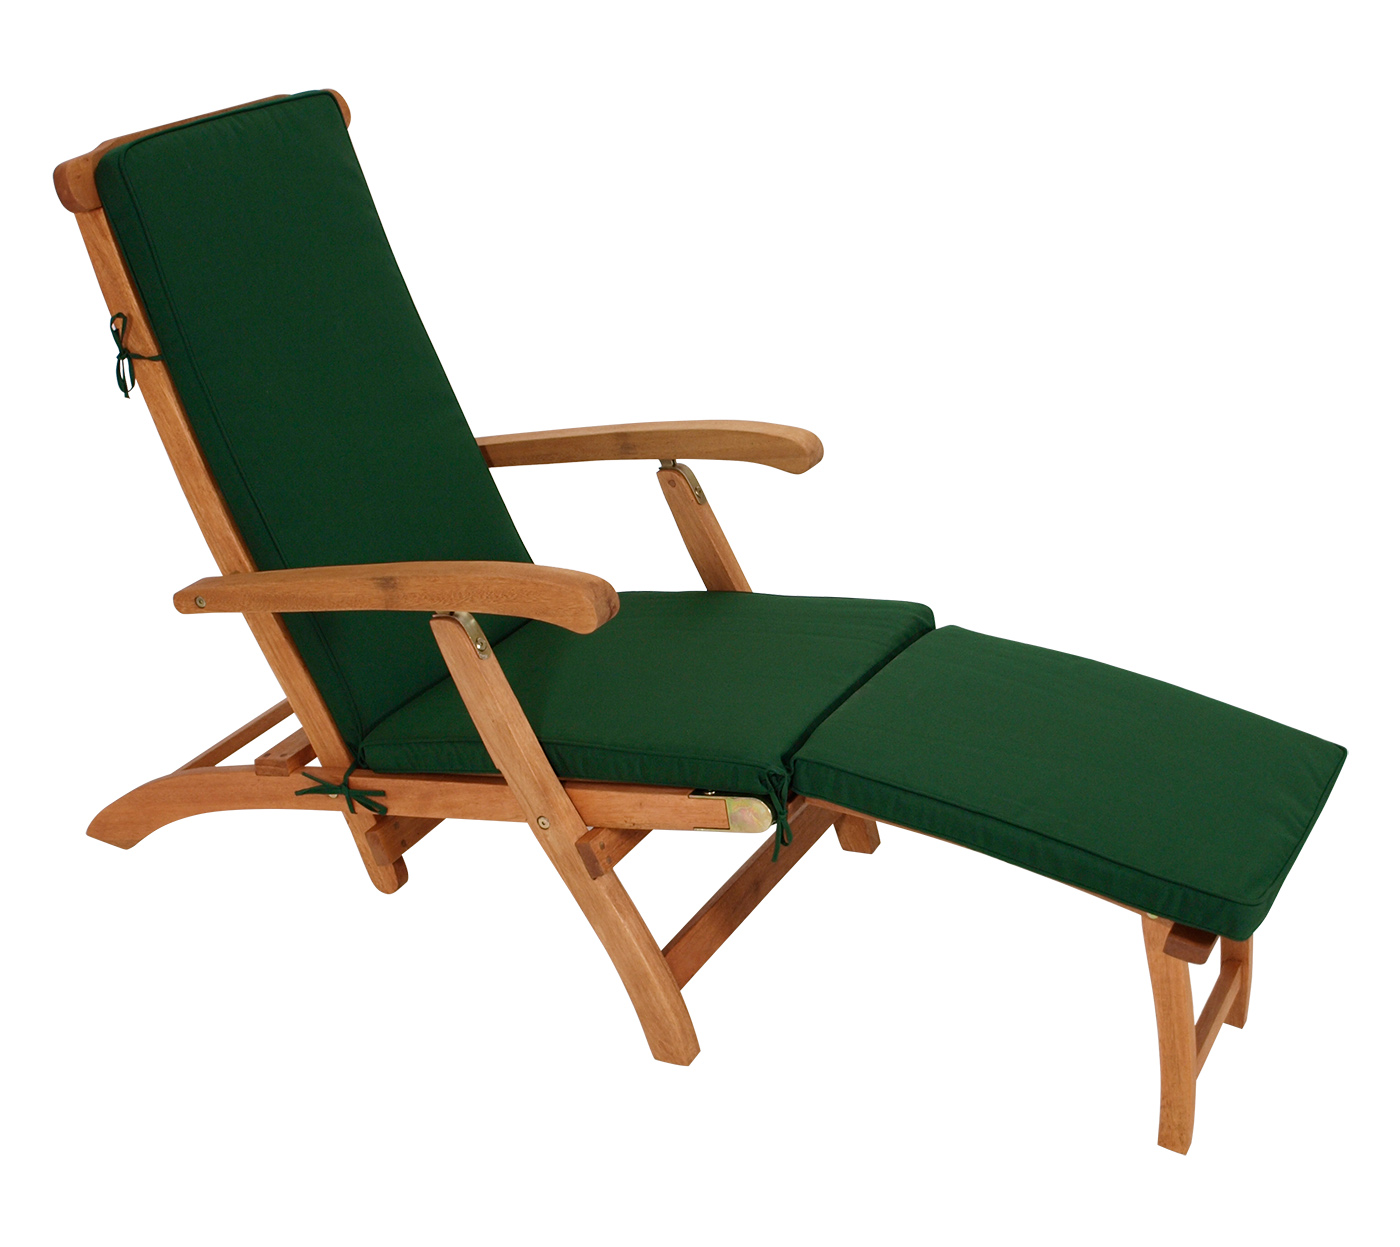 auflage liegestuhl deckchair polster deckchairauflage denver gr n 176x48cm ebay. Black Bedroom Furniture Sets. Home Design Ideas